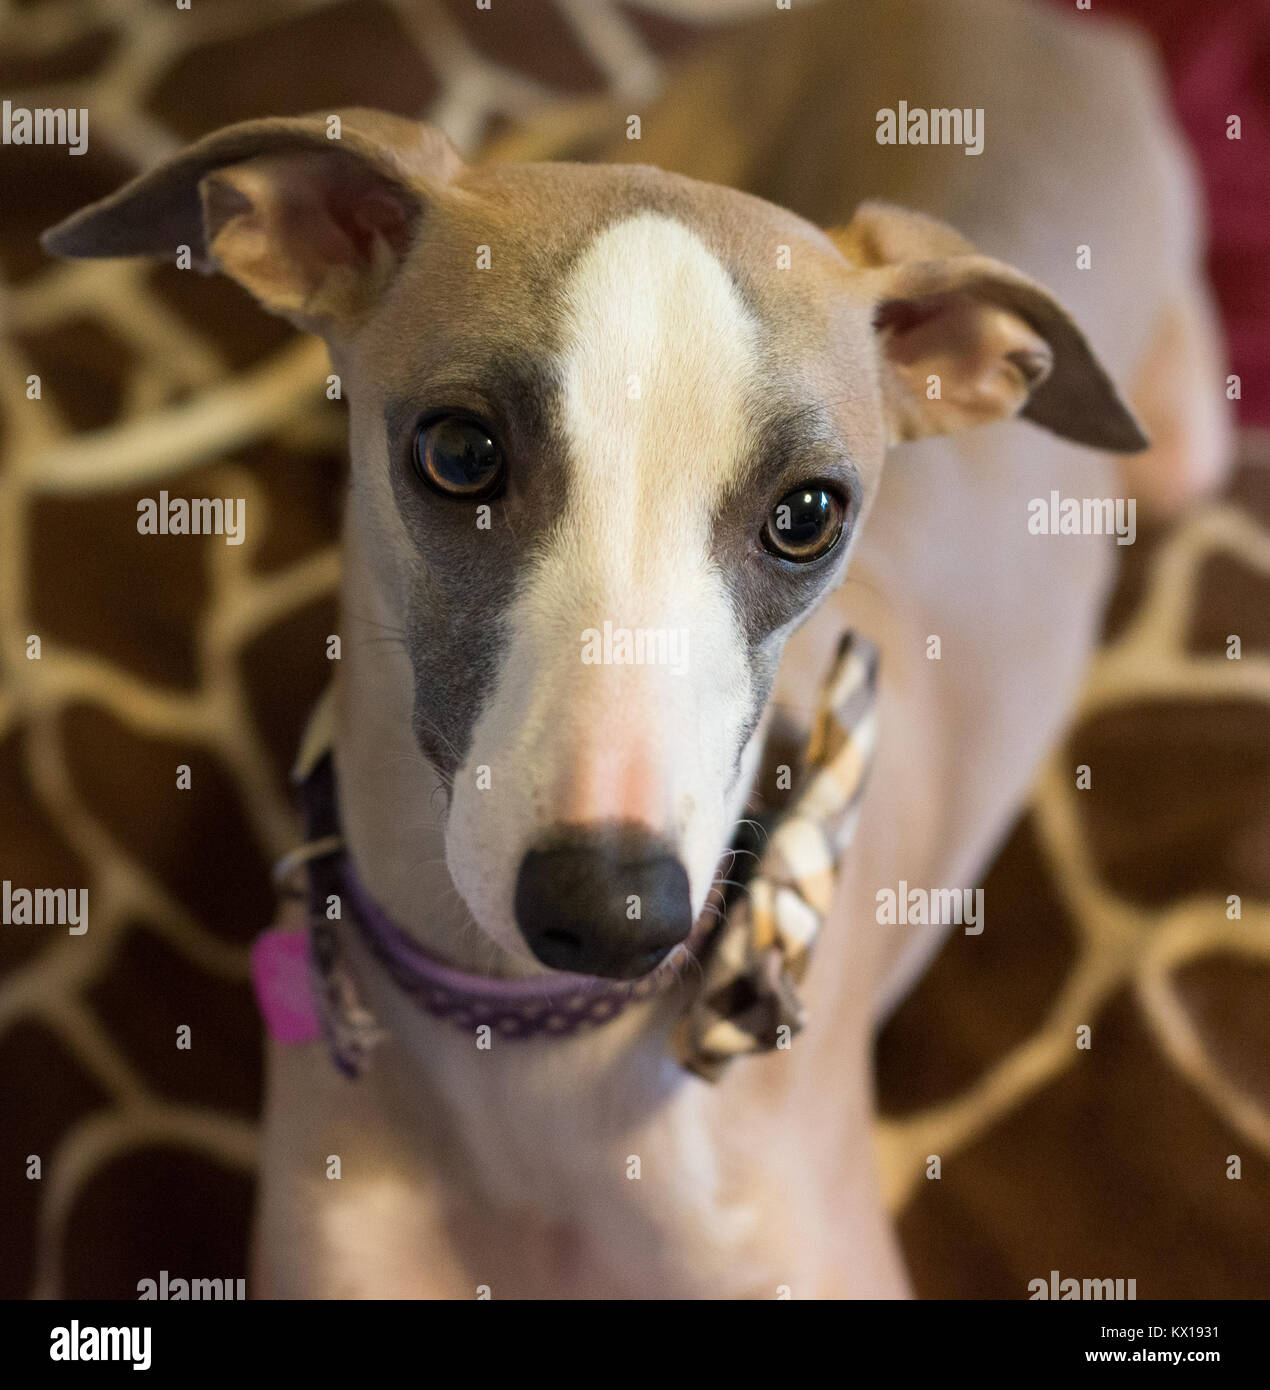 whippet puppy closeup of eyes - Stock Image